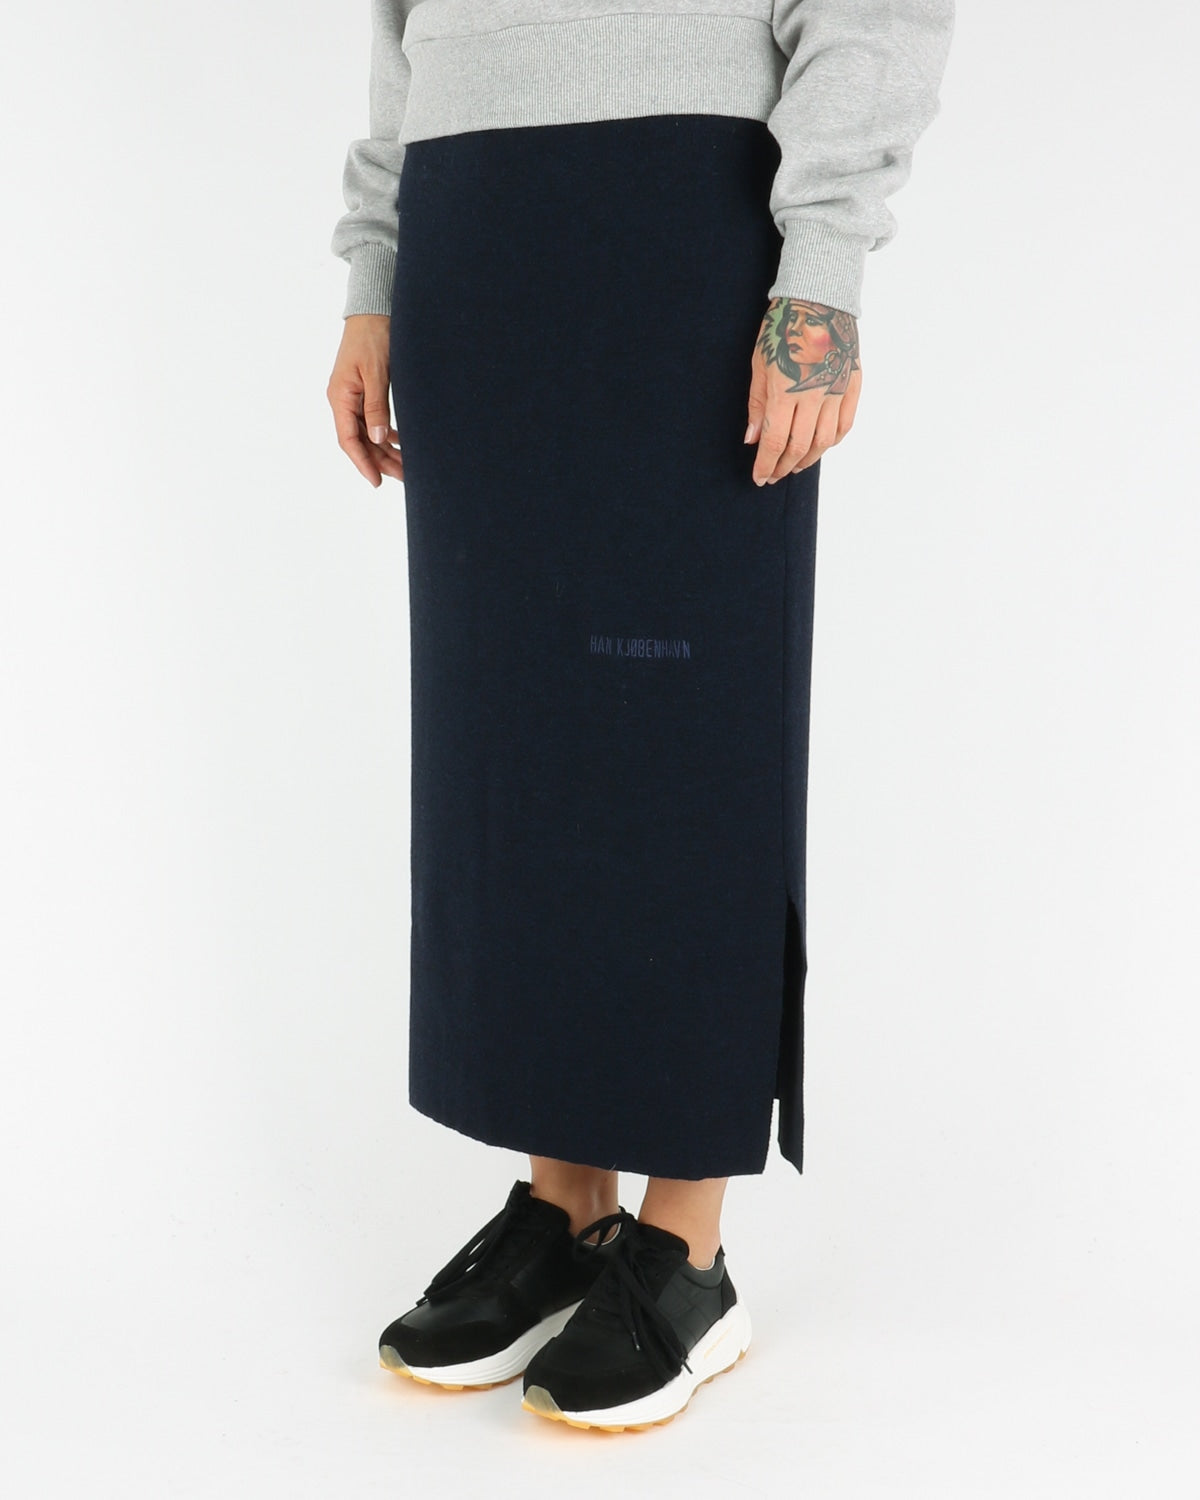 han kjobenhavn_knit skirt_navy_view_2_3